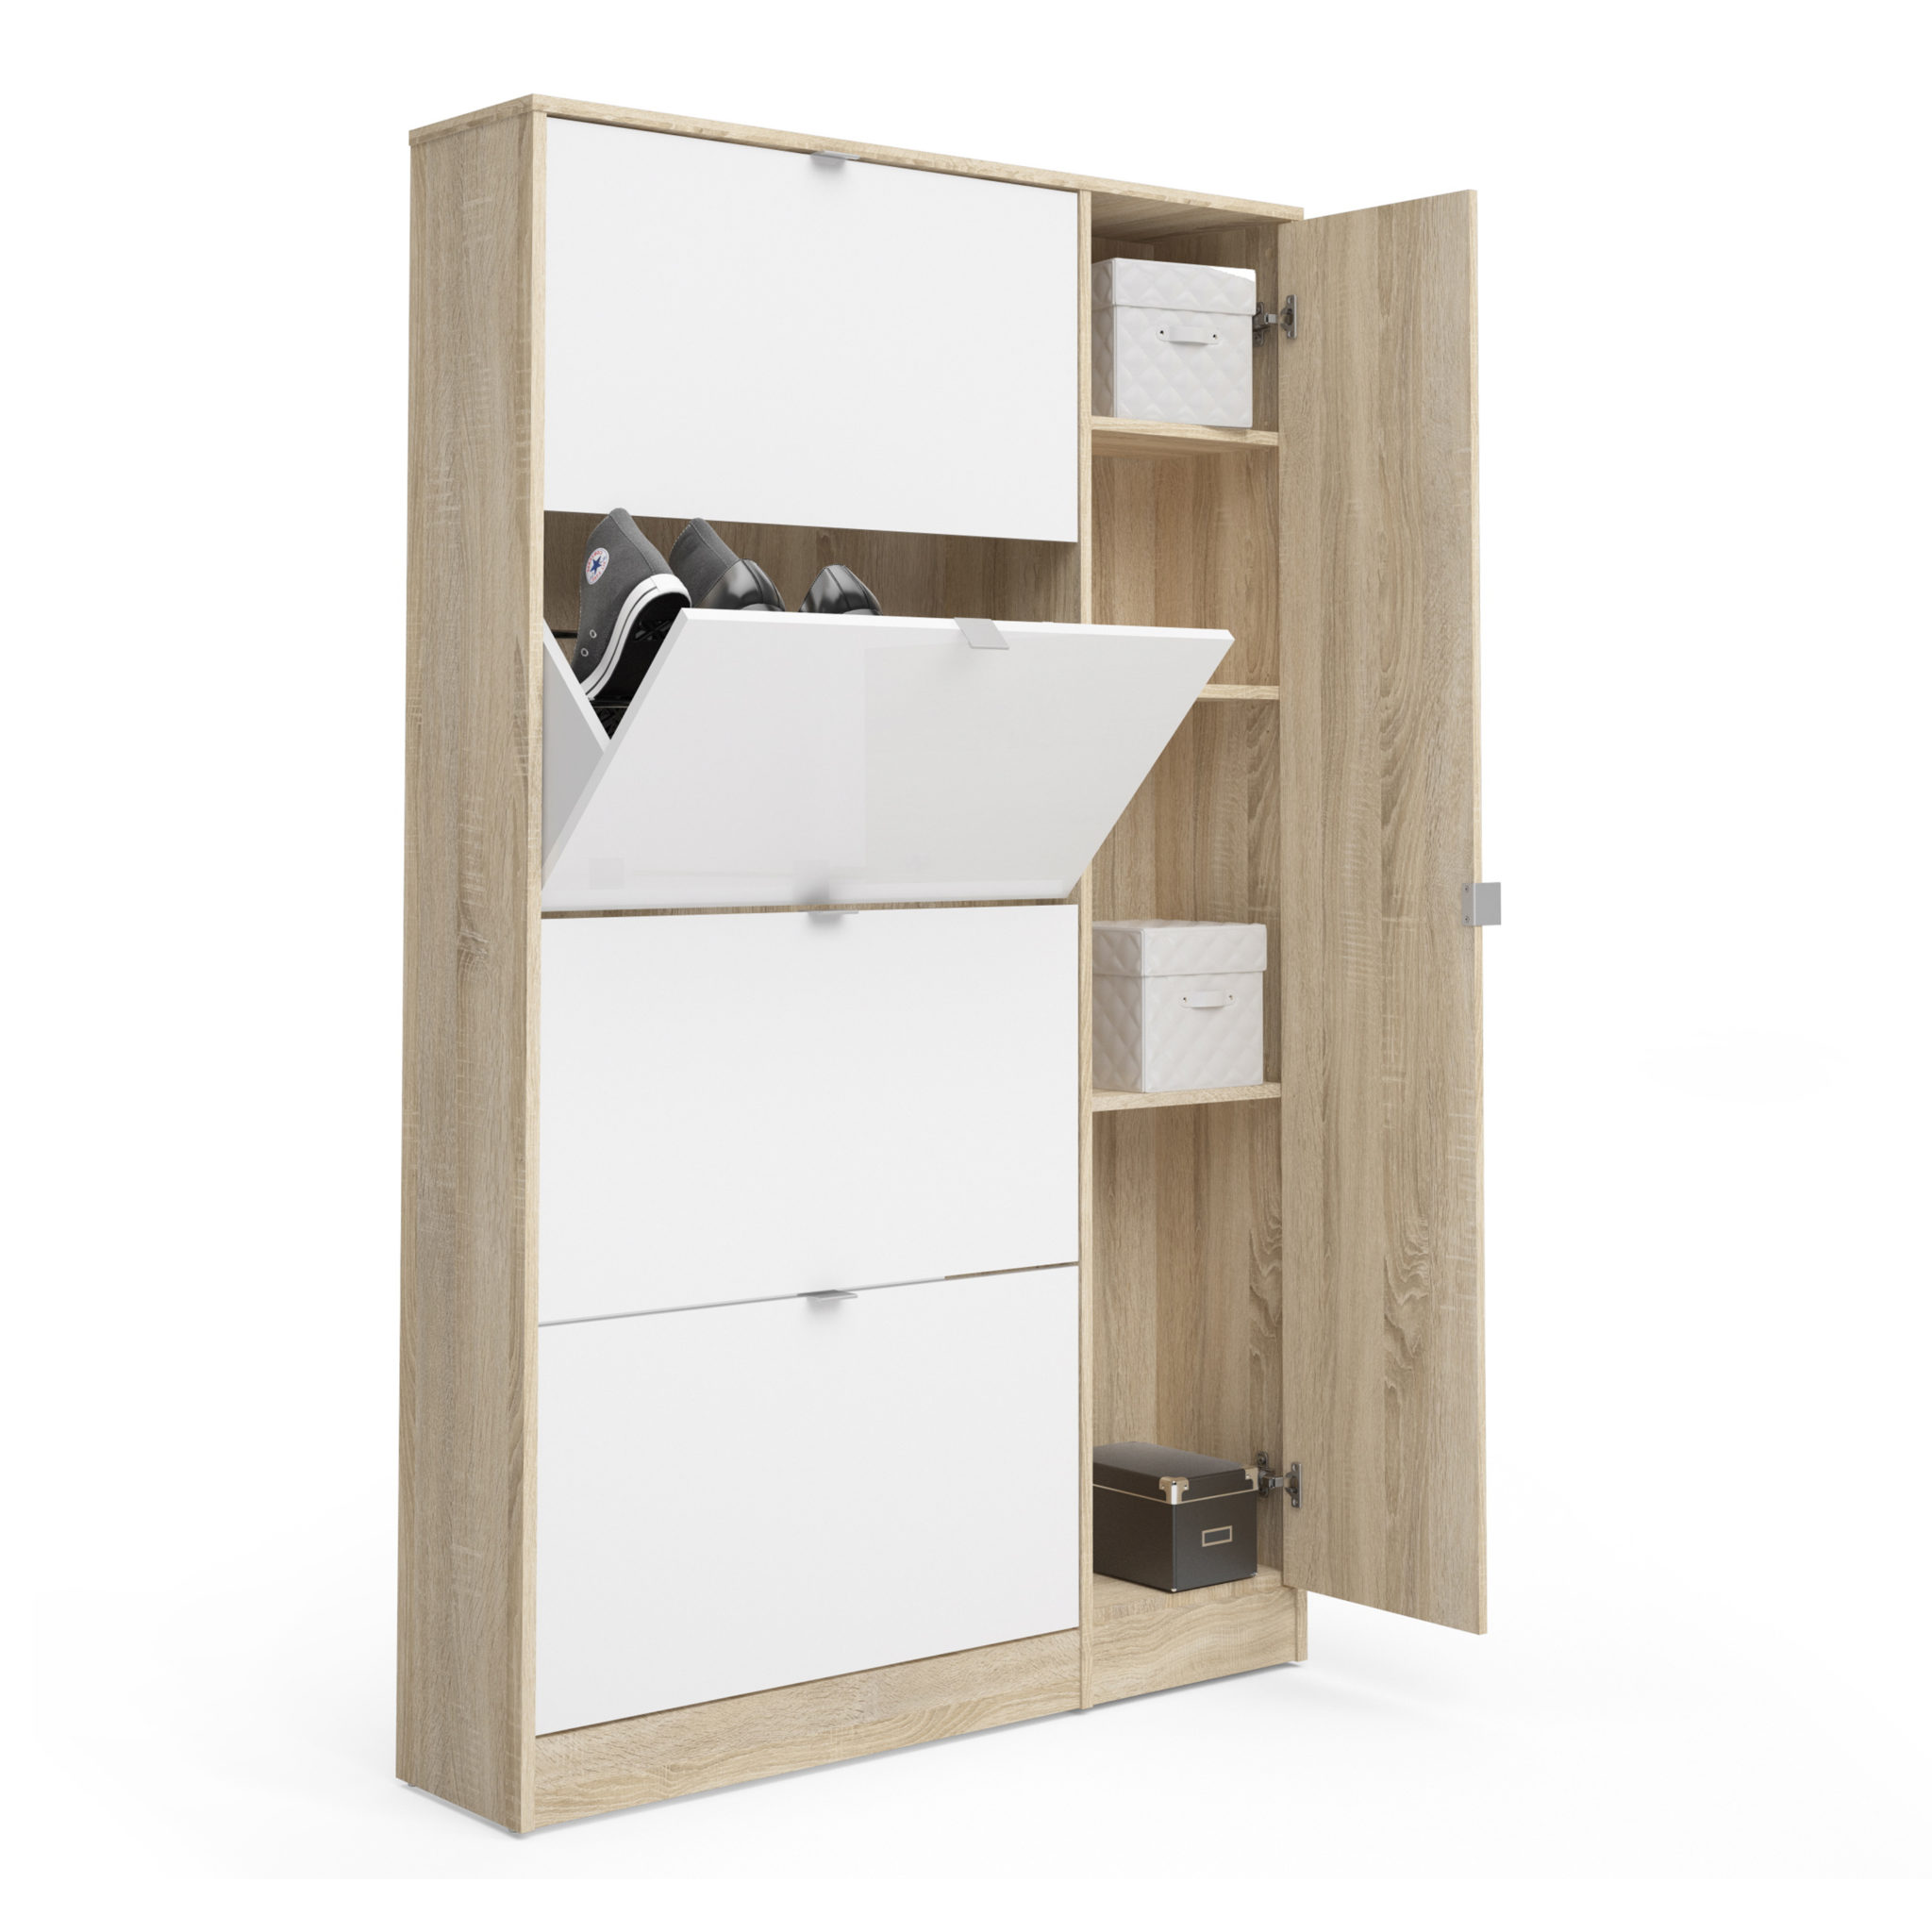 Shoe Cabinet 4 Compartments + 1 Door w/ Mirror in Oak with White High Gloss